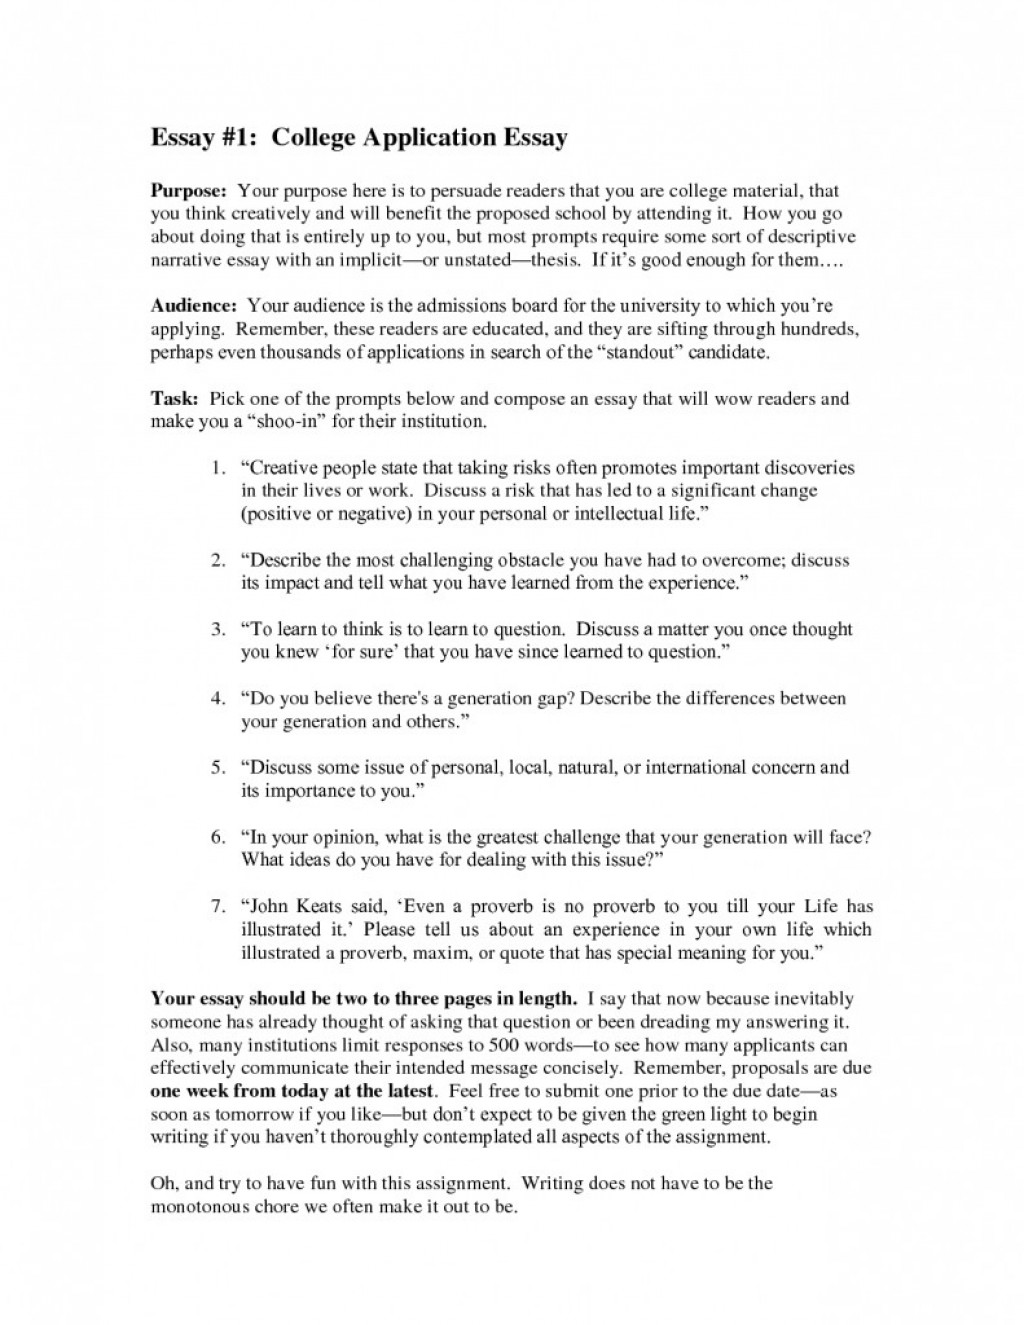 016 Essay Example Collegelication 791x1024 Topics Common Shocking College App Prompts 2018 Examples Large